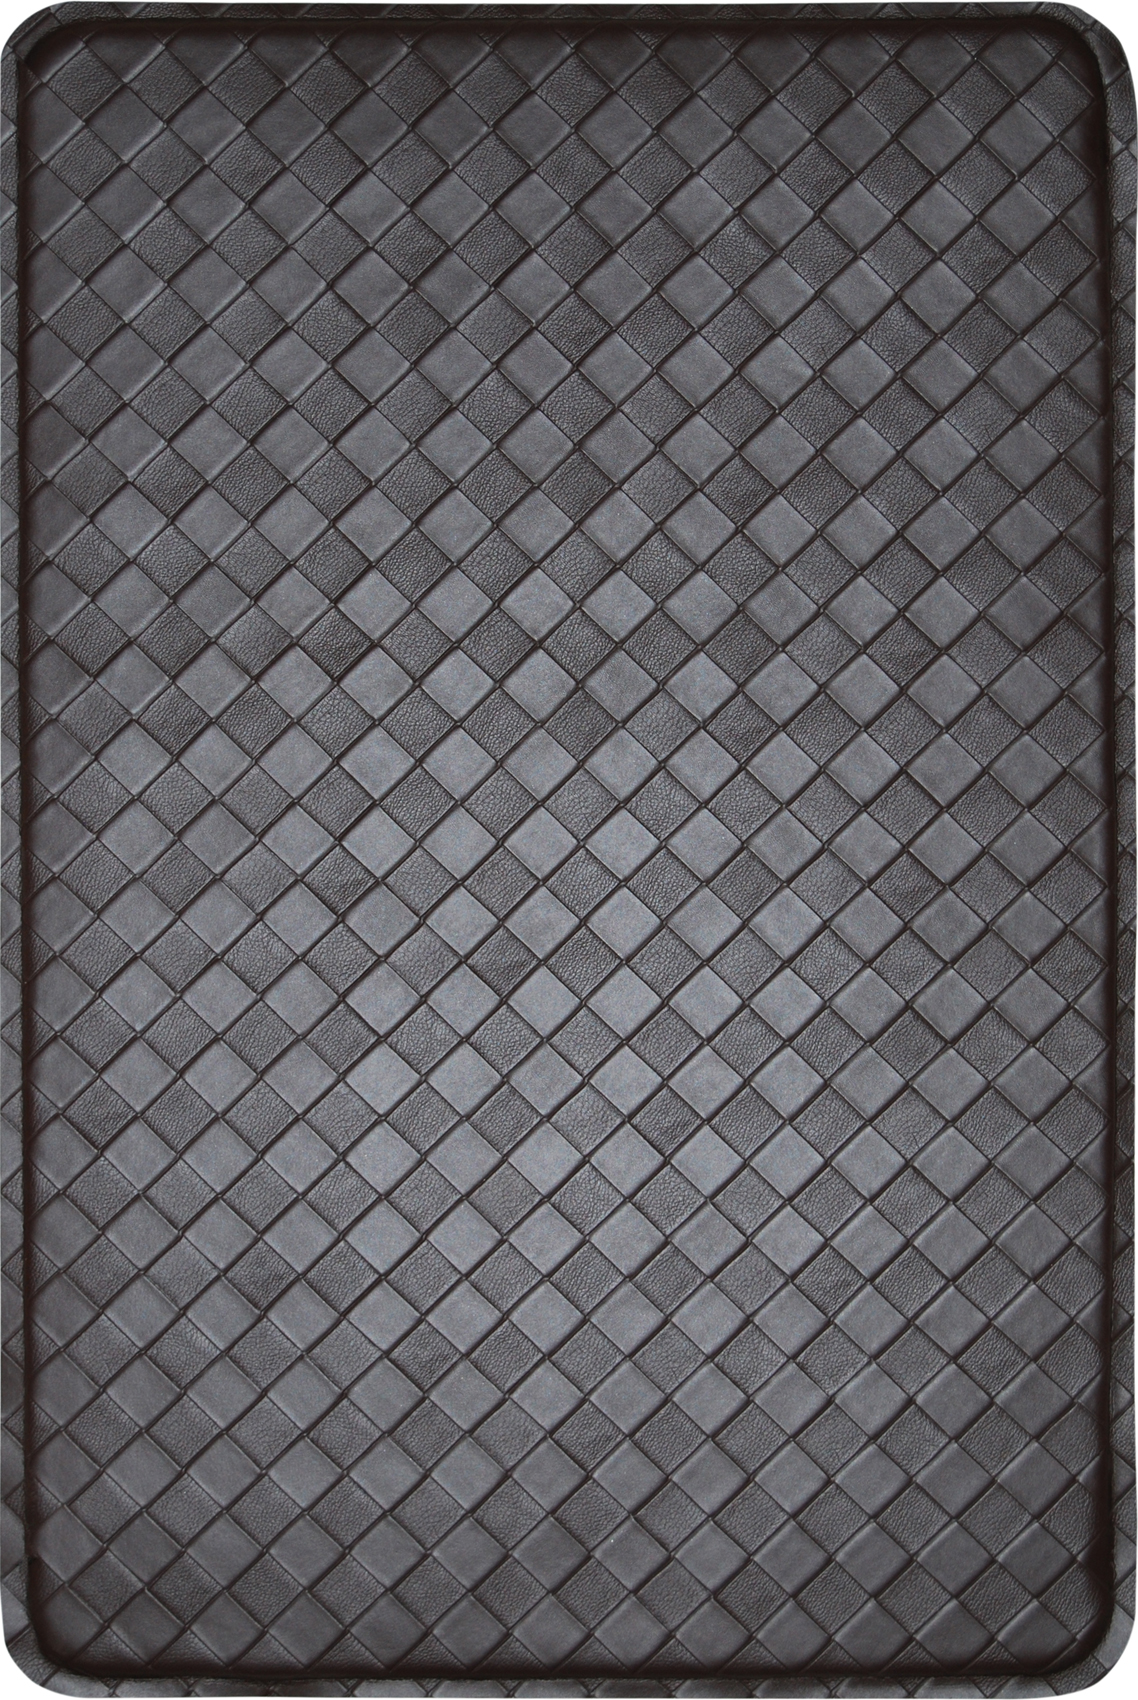 Floor mats kenya - Modern Indoor Cushion Kitchen Rug Anti Fatigue Floor